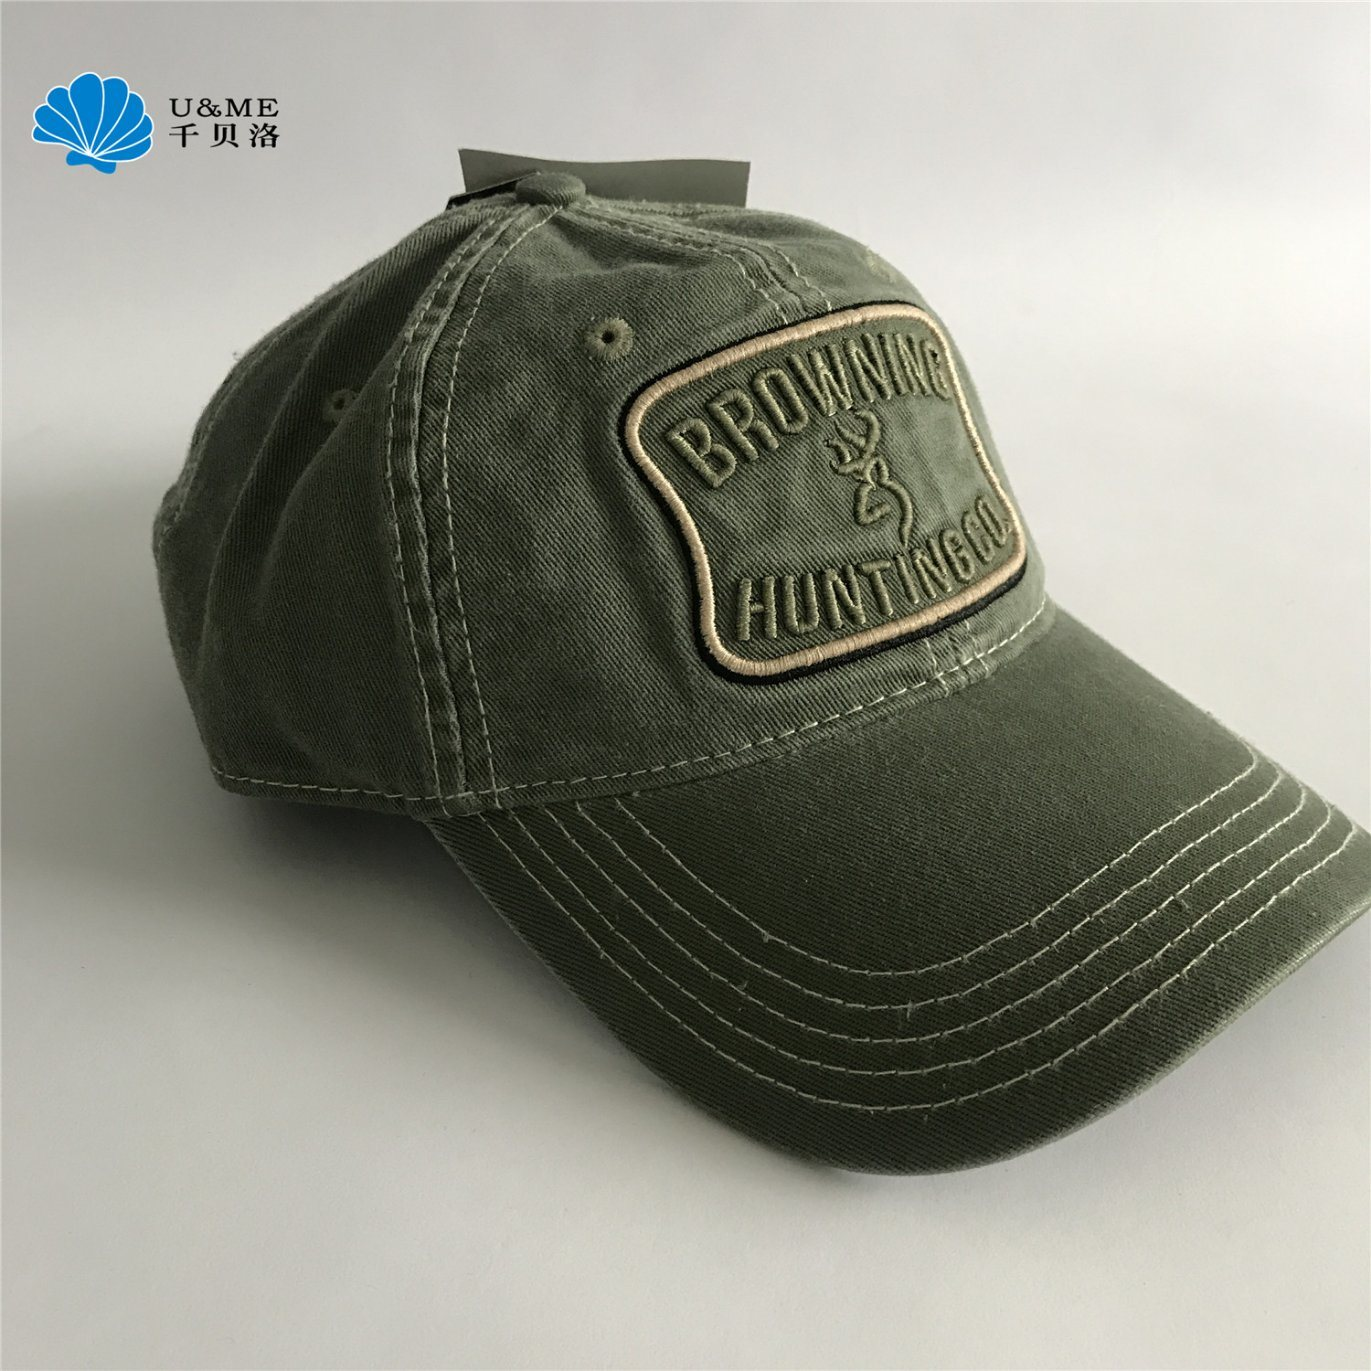 Wholesale Hats Embroidered Caps - Buy Reliable Hats